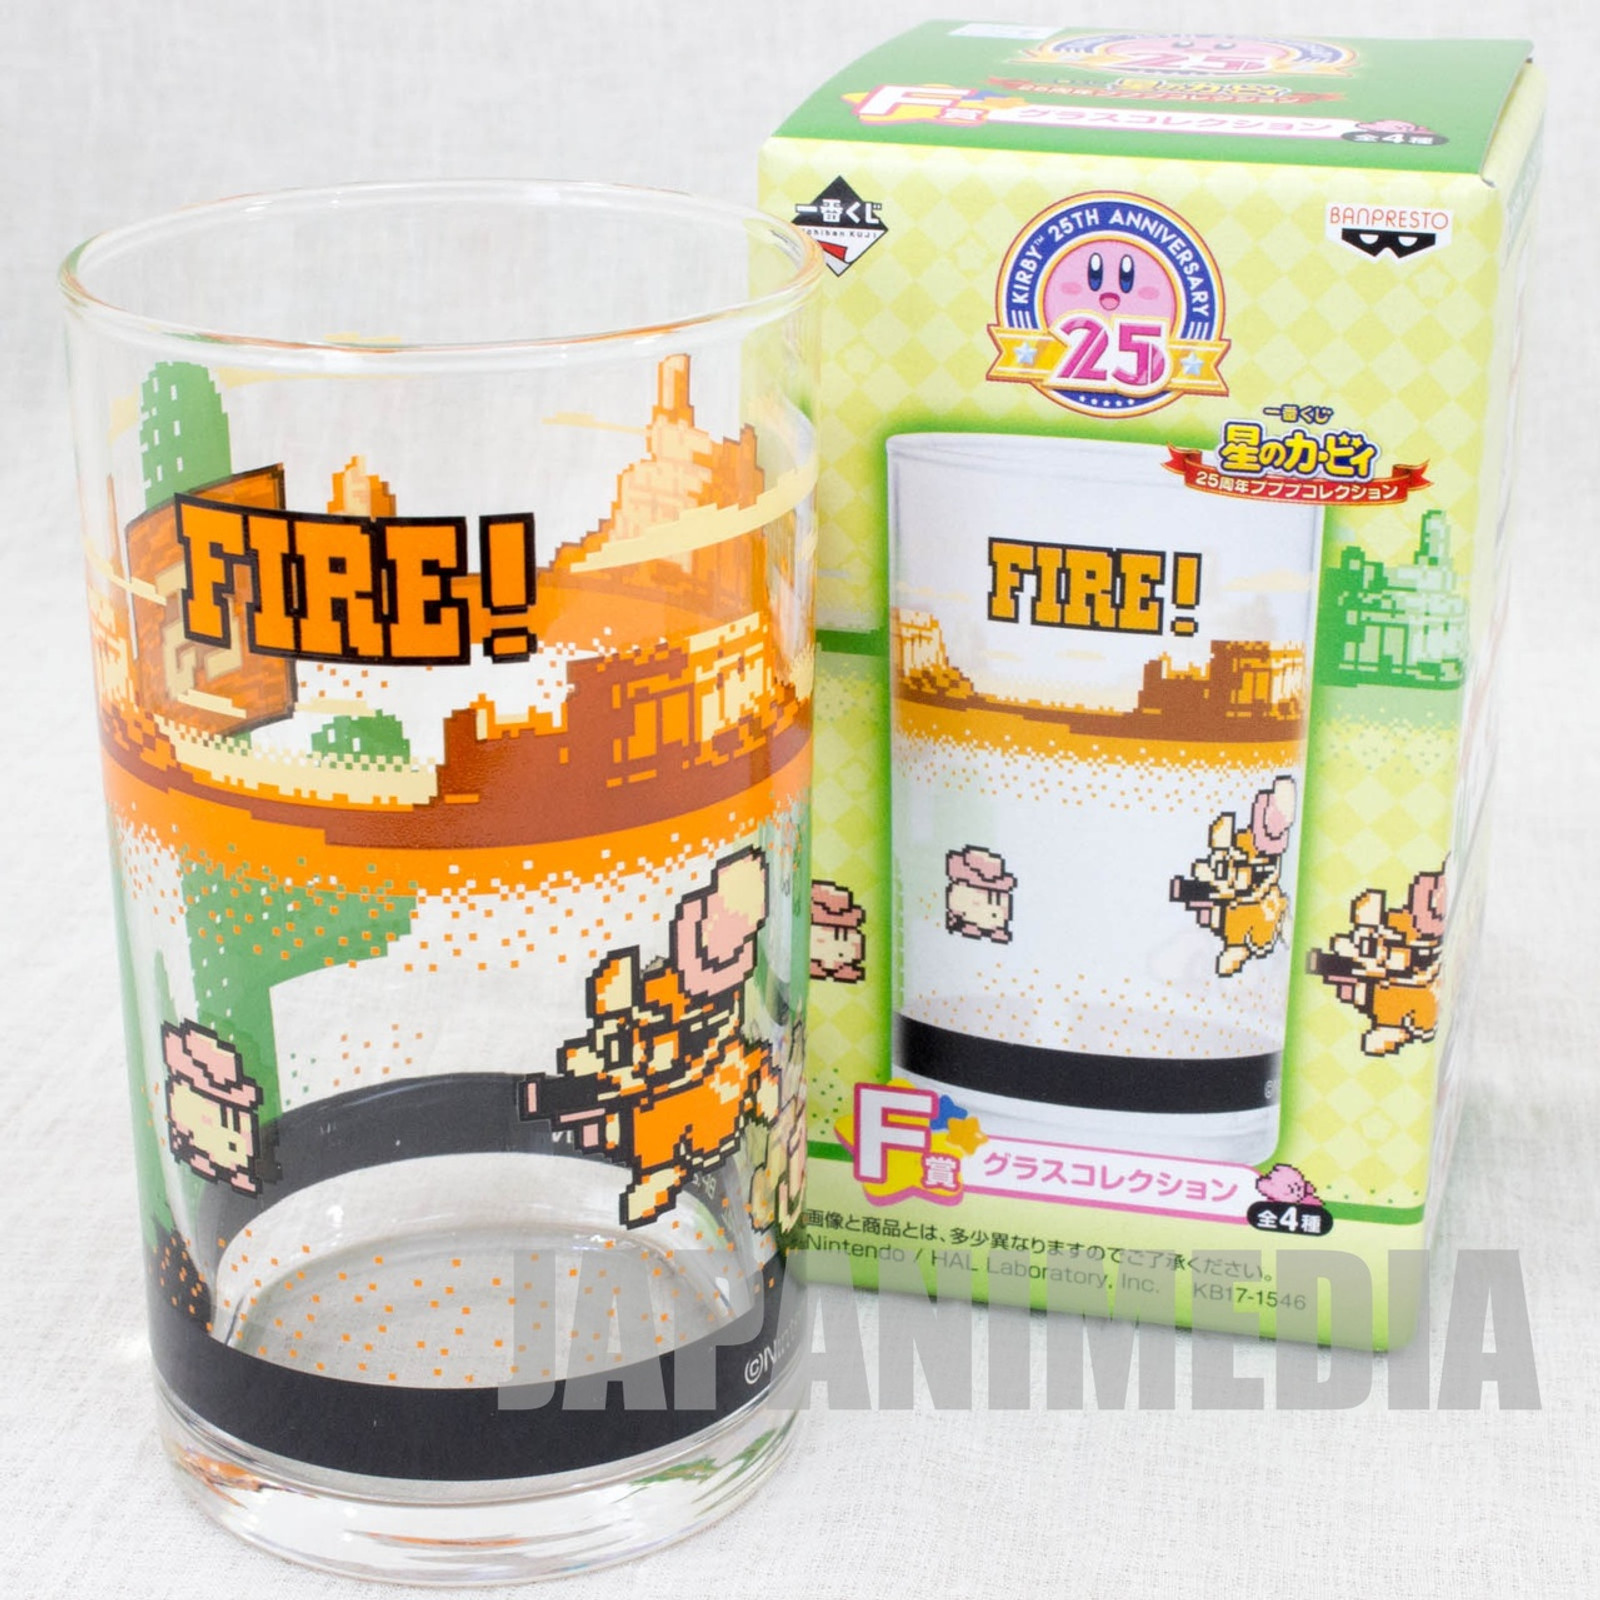 Kirby Super Star Glass Dedede King ver. Banpresto JAPAN GAME NINTNEDO